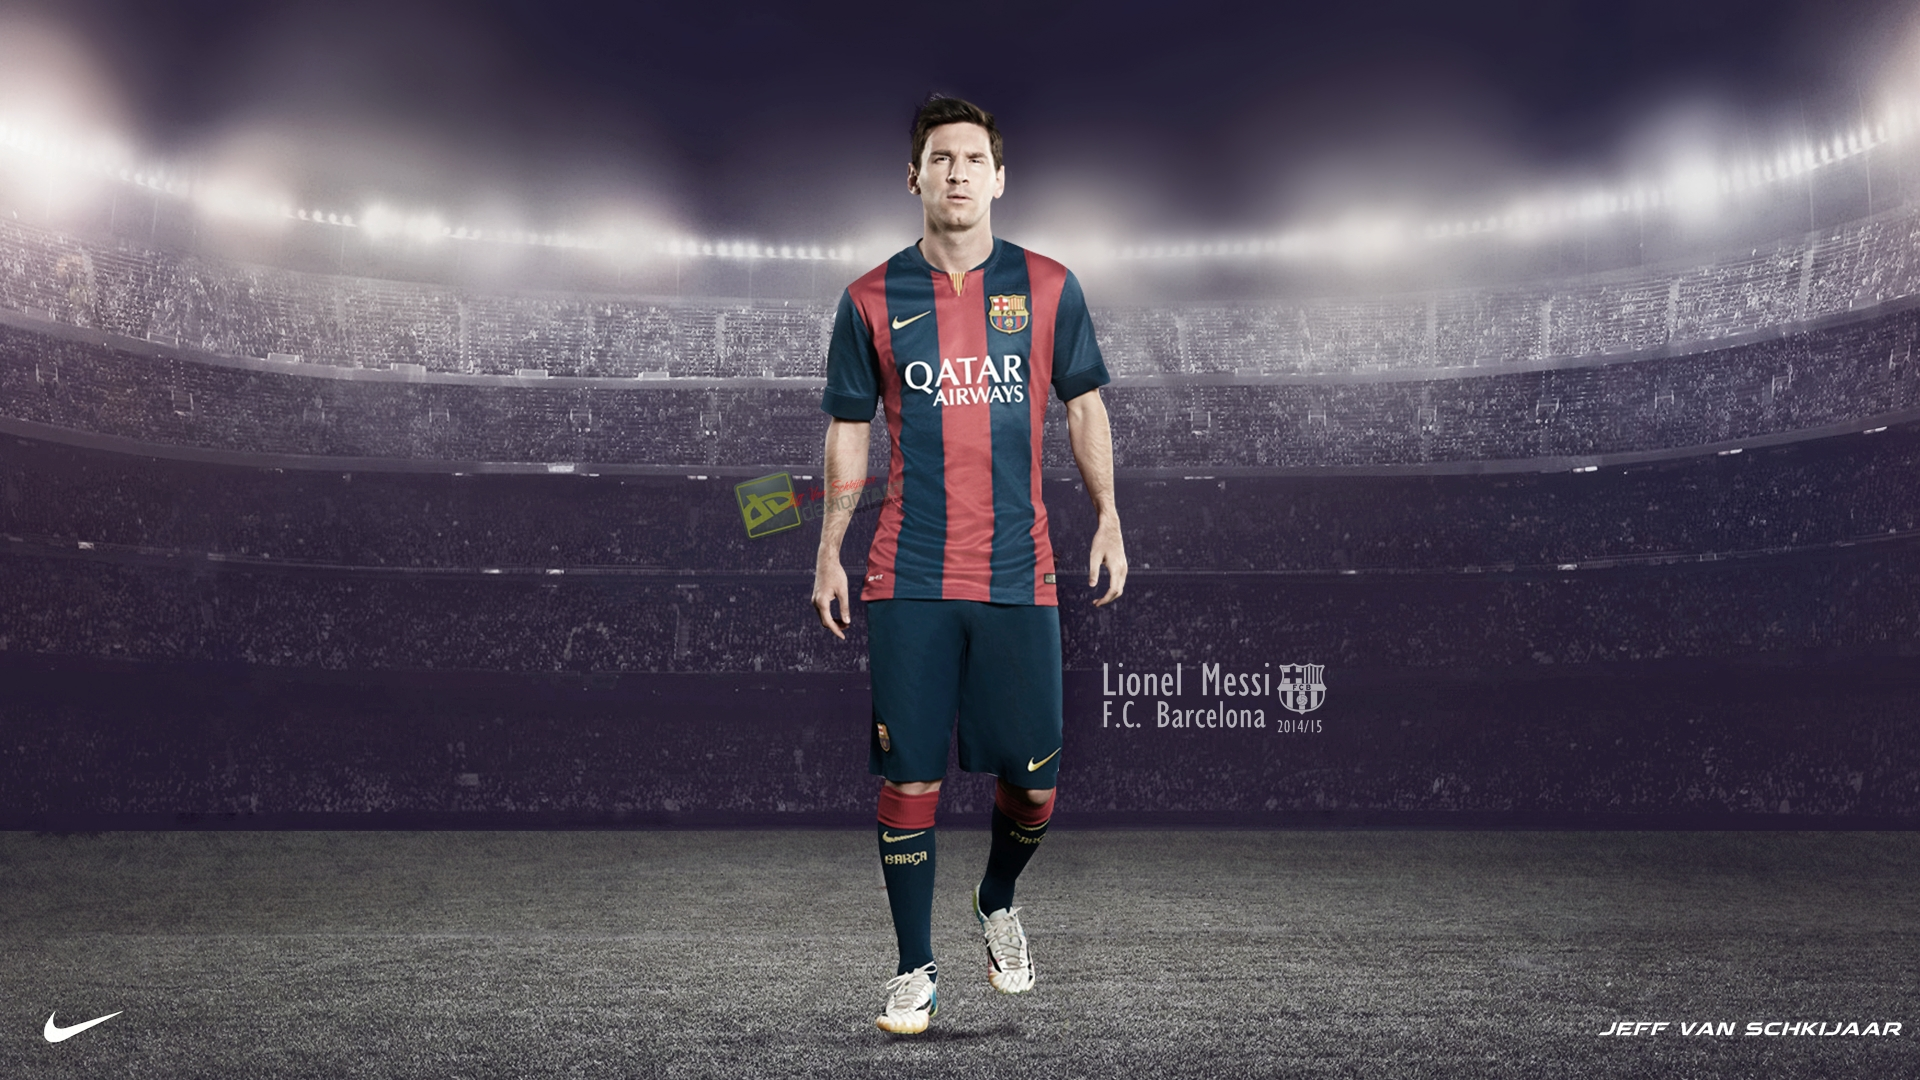 Lionel Messi Wallpapers 2015